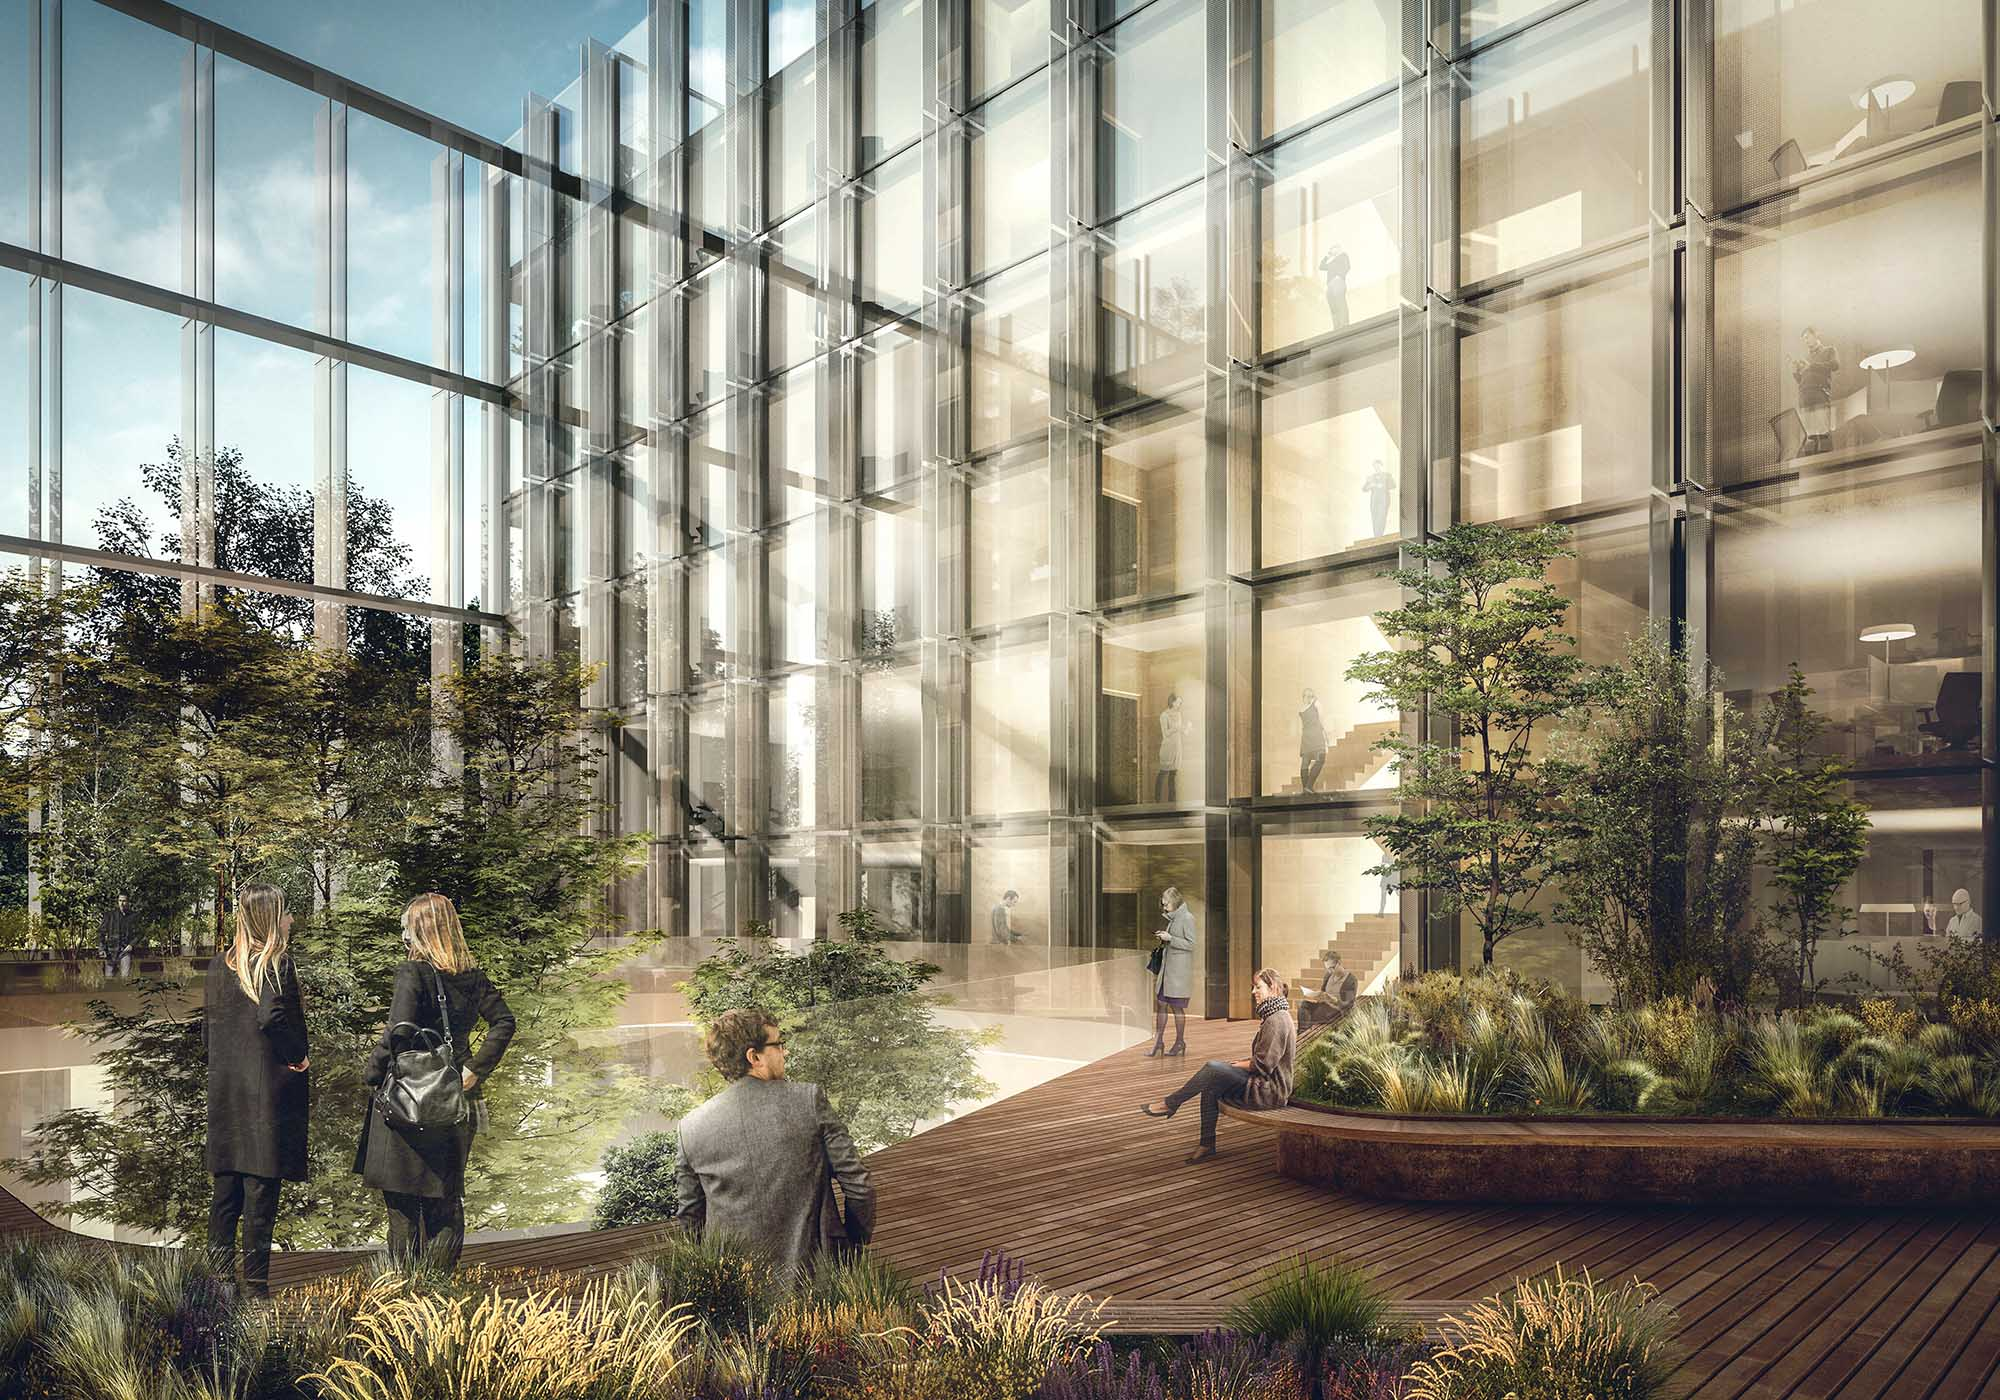 The lighting and air conditioning systems will ensure the utmost comfort while the distribution of the rooms will alternate working environments with green indoor and outdoor spaces and areas devoted to me render by Antonio Citterio Patricia Viel